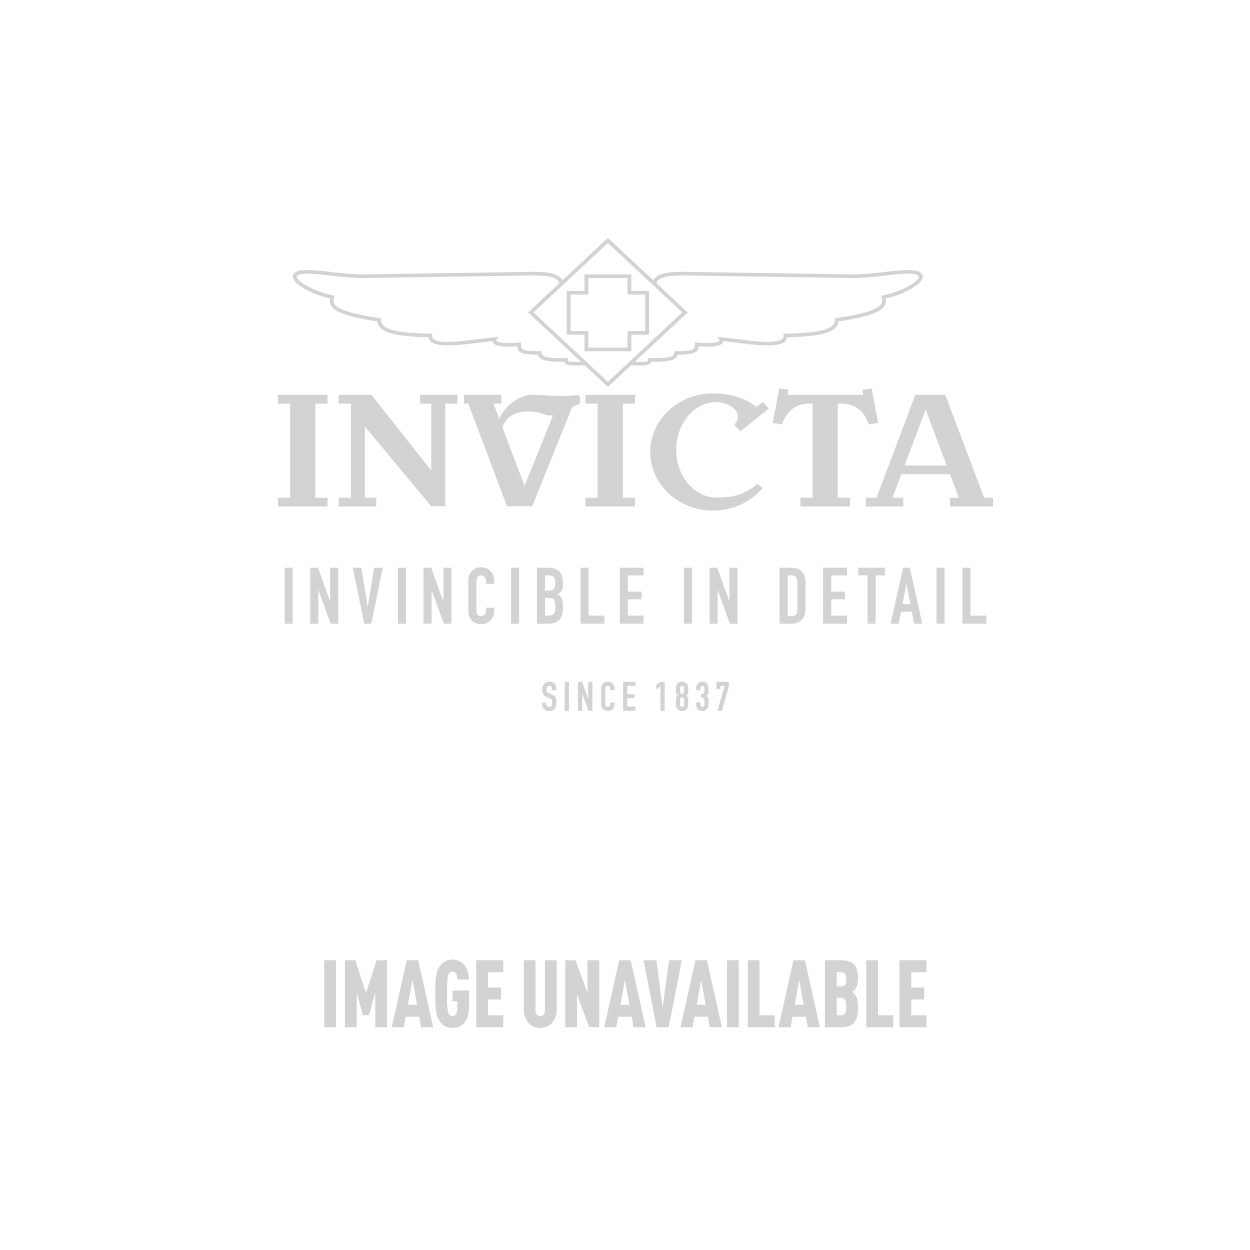 50175706ac4 S Coifman Watches by Invicta